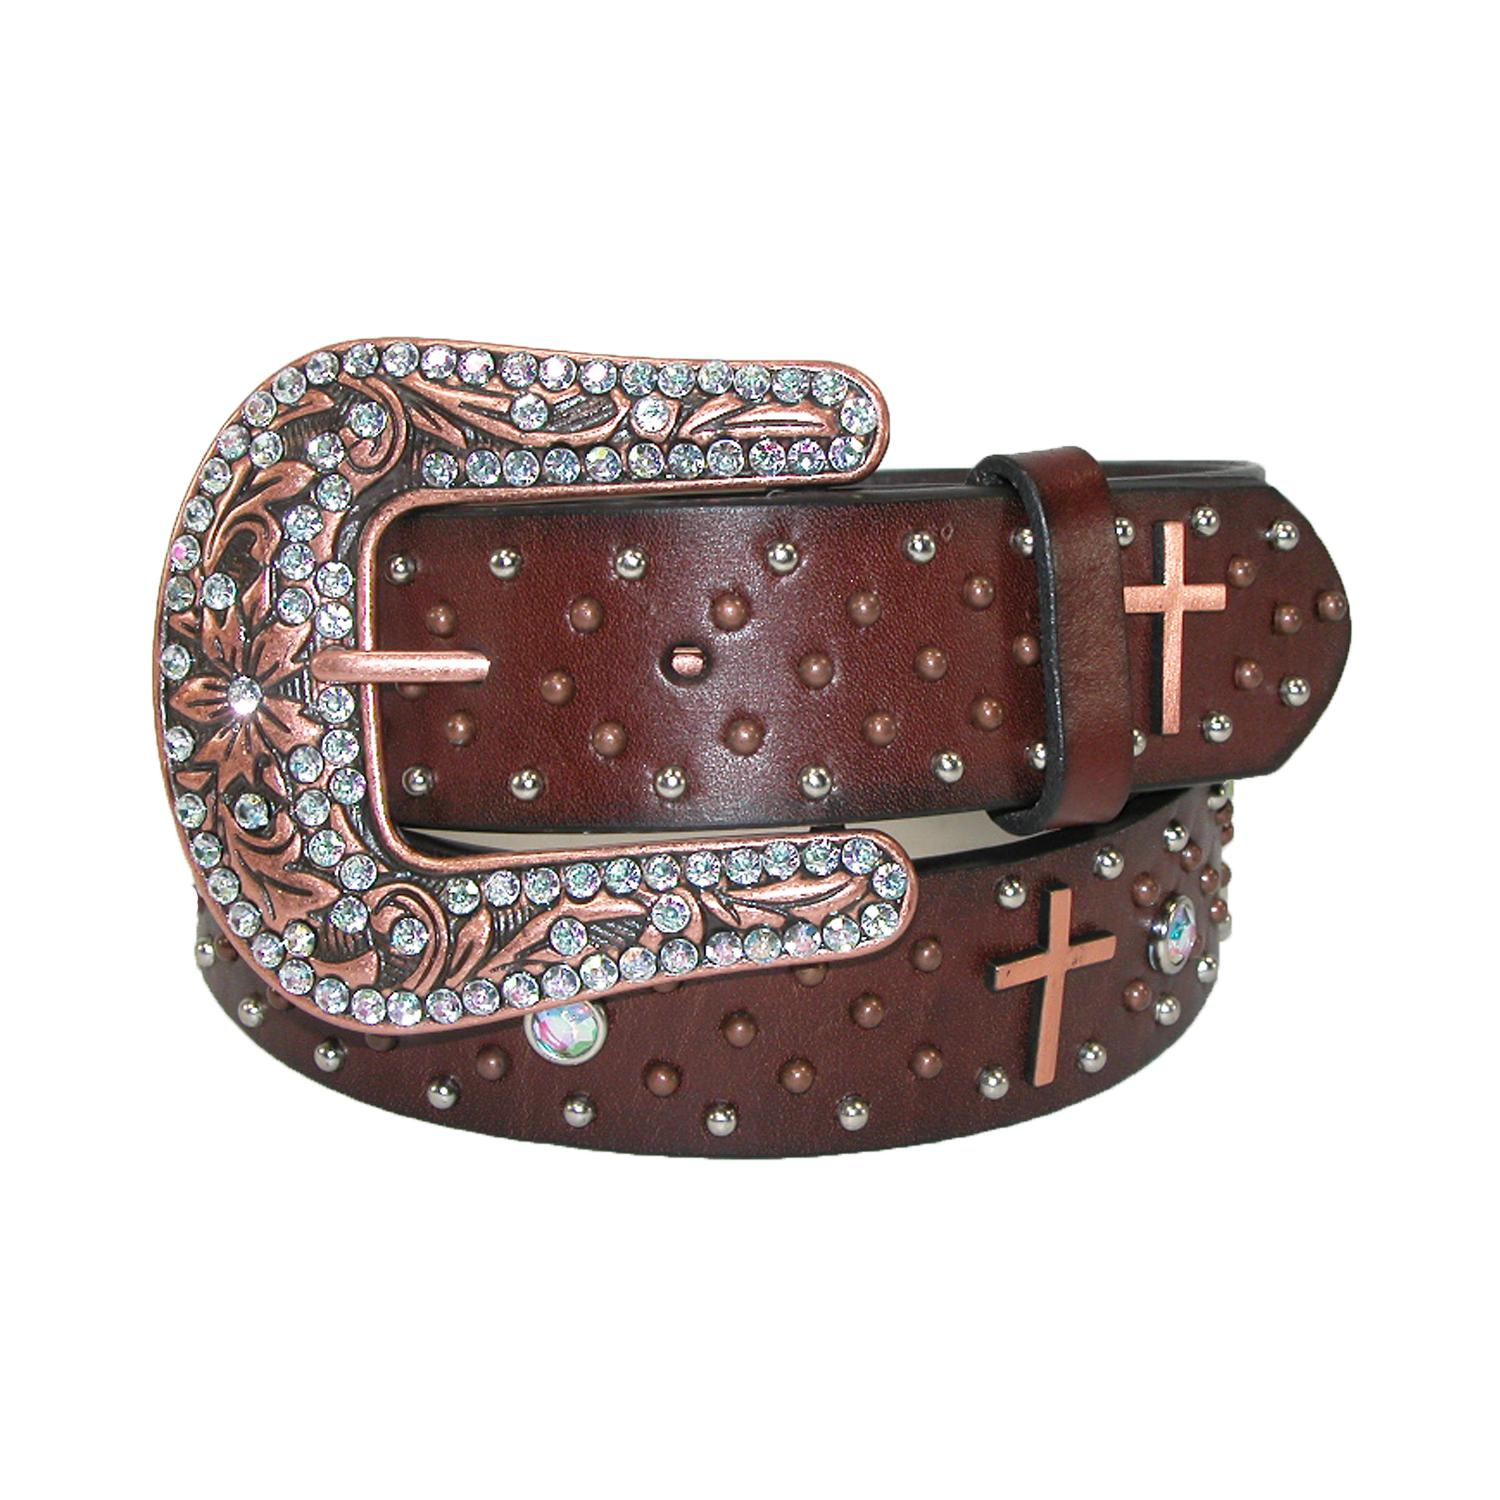 Roper Womens Leather Removable Buckle Belt With Copper Crosses